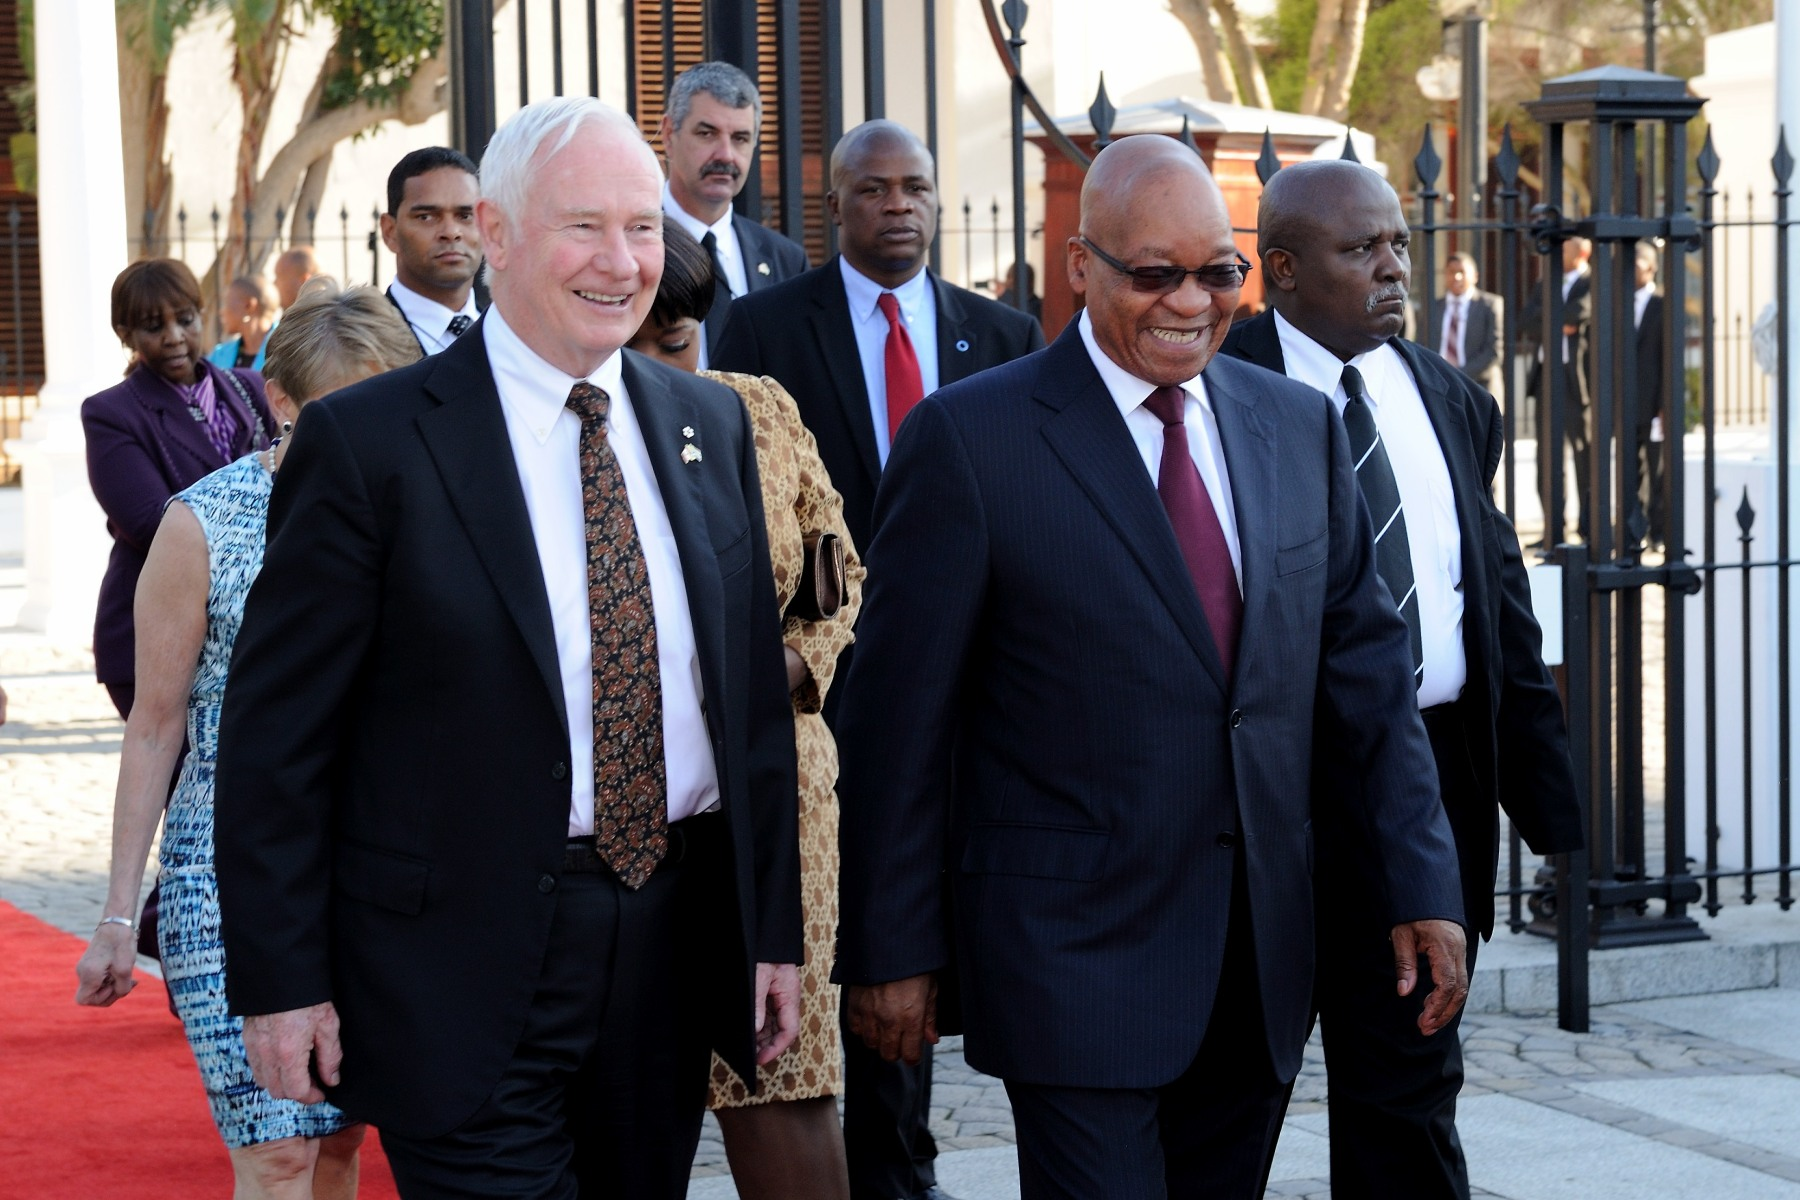 During their time together, the Governor General and the President spoke about the potential for increasing ties between Canada and South Africa in business, investment and, particularly, international education and science co-operation.